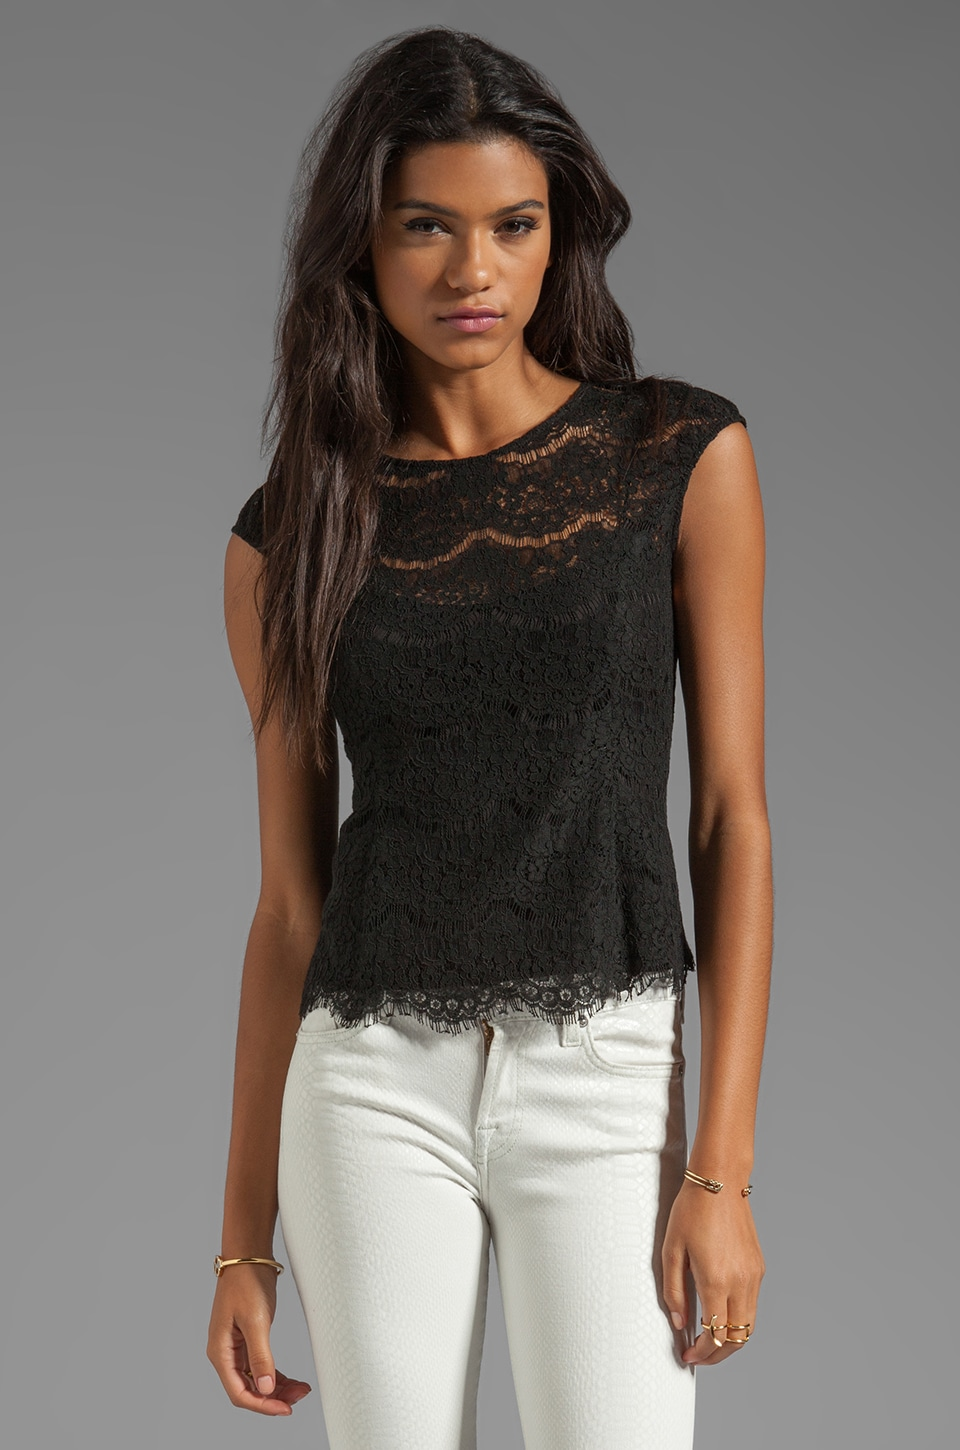 Dolce Vita Galina Eyelash Lace Top in Black